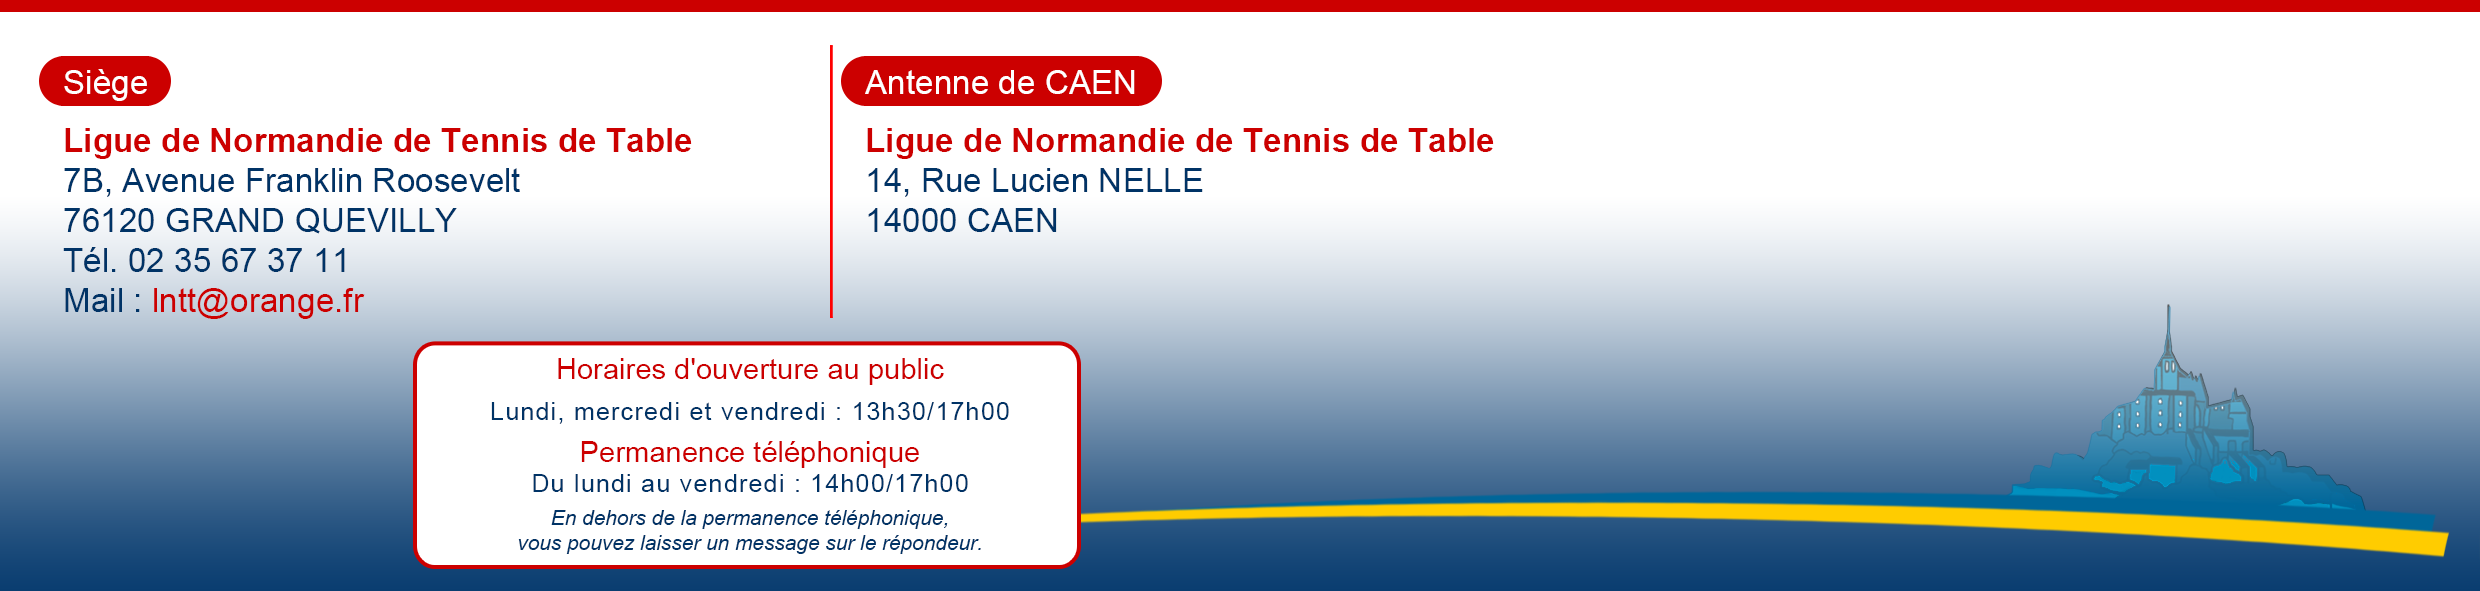 Ligue de normandie de tennis de table accueil - Ligue de basse normandie de tennis de table ...